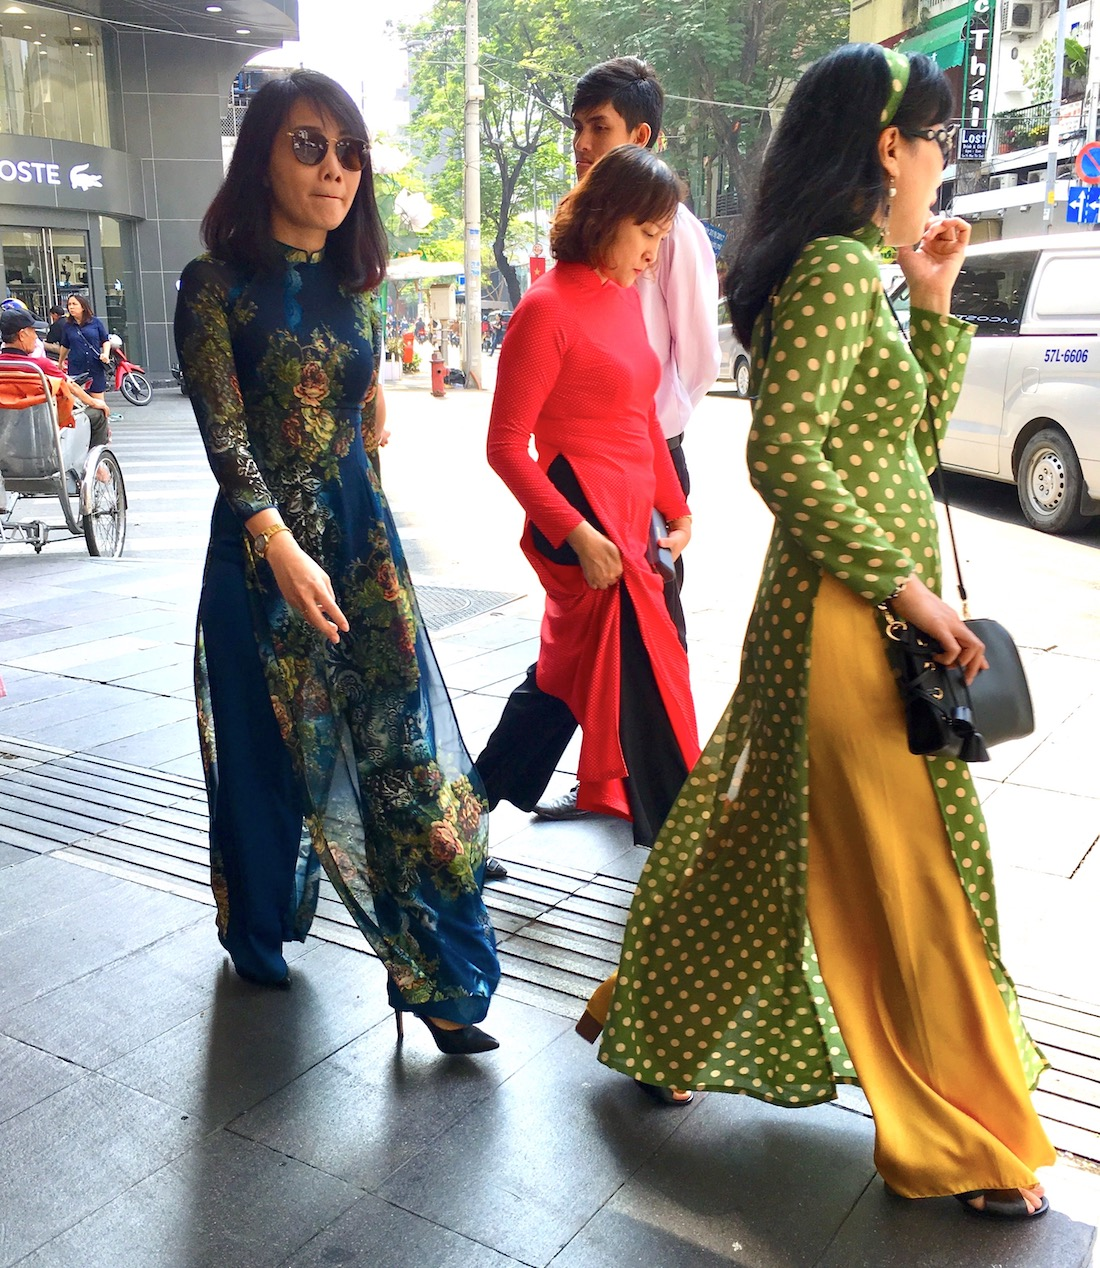 Ao Dai ladies em Ho Chi Minh City. Foto: Patti Neves